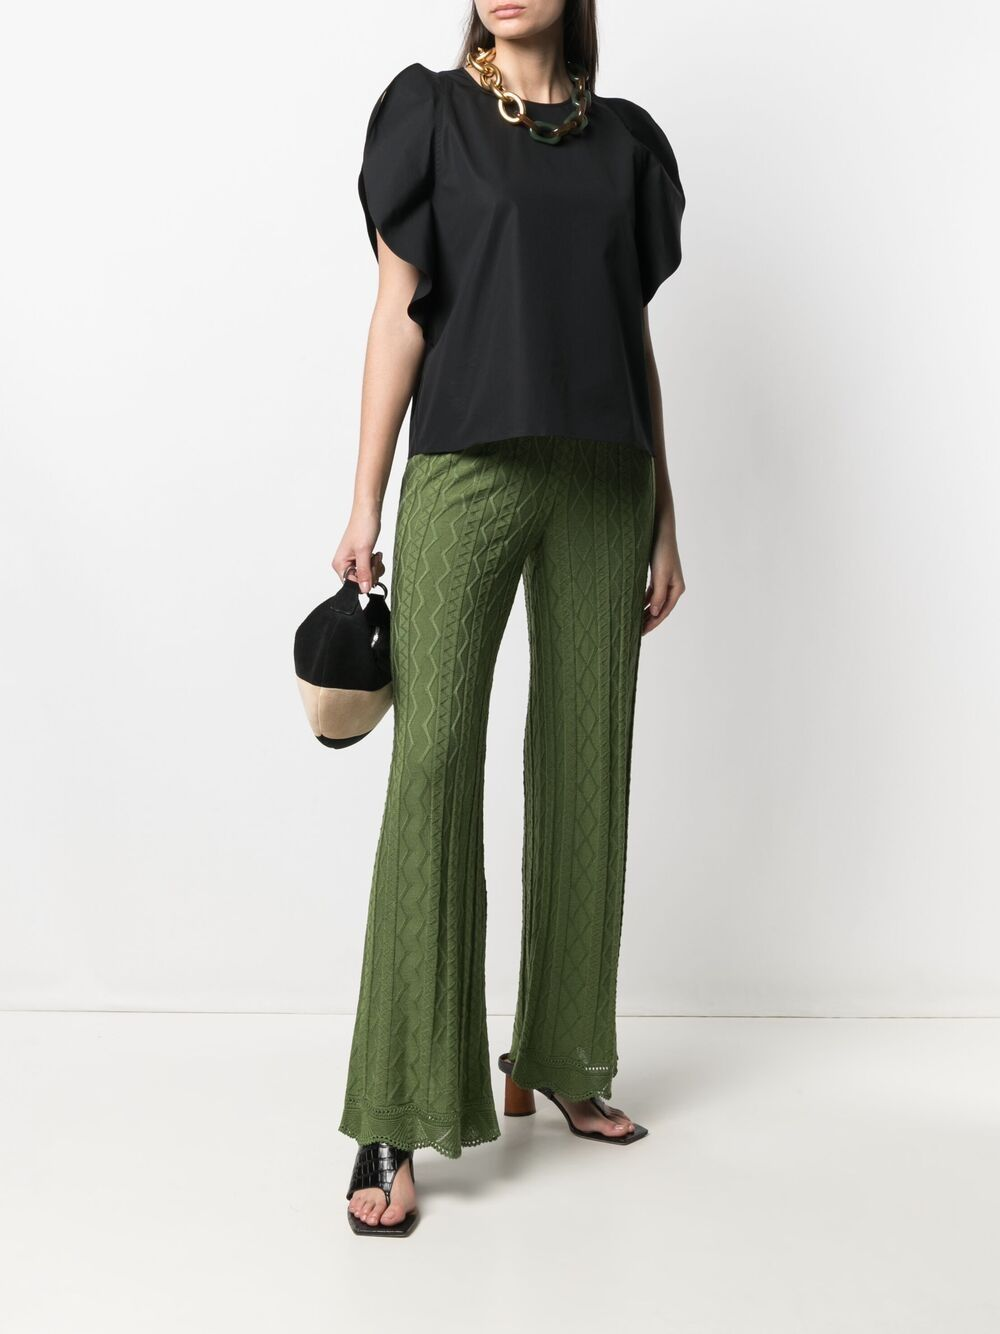 Picture of Aspesi | Slit-Sleeved Cotton Blouse